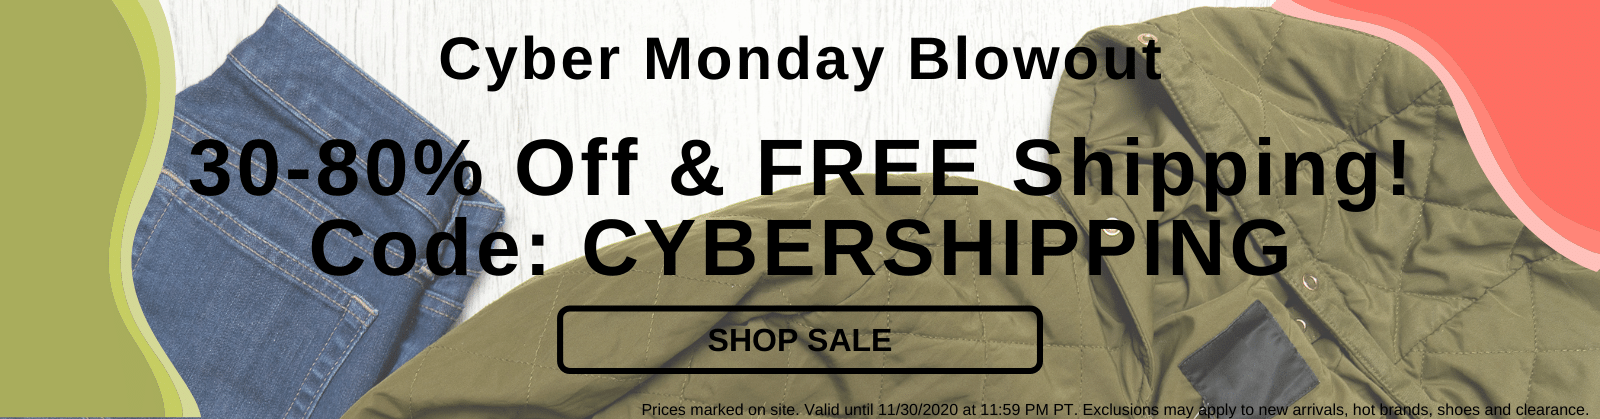 Cyber Monday Blowout 30-80% Off & FREE Shipping! Code: CYBERSHIPPING [Shop Sale]